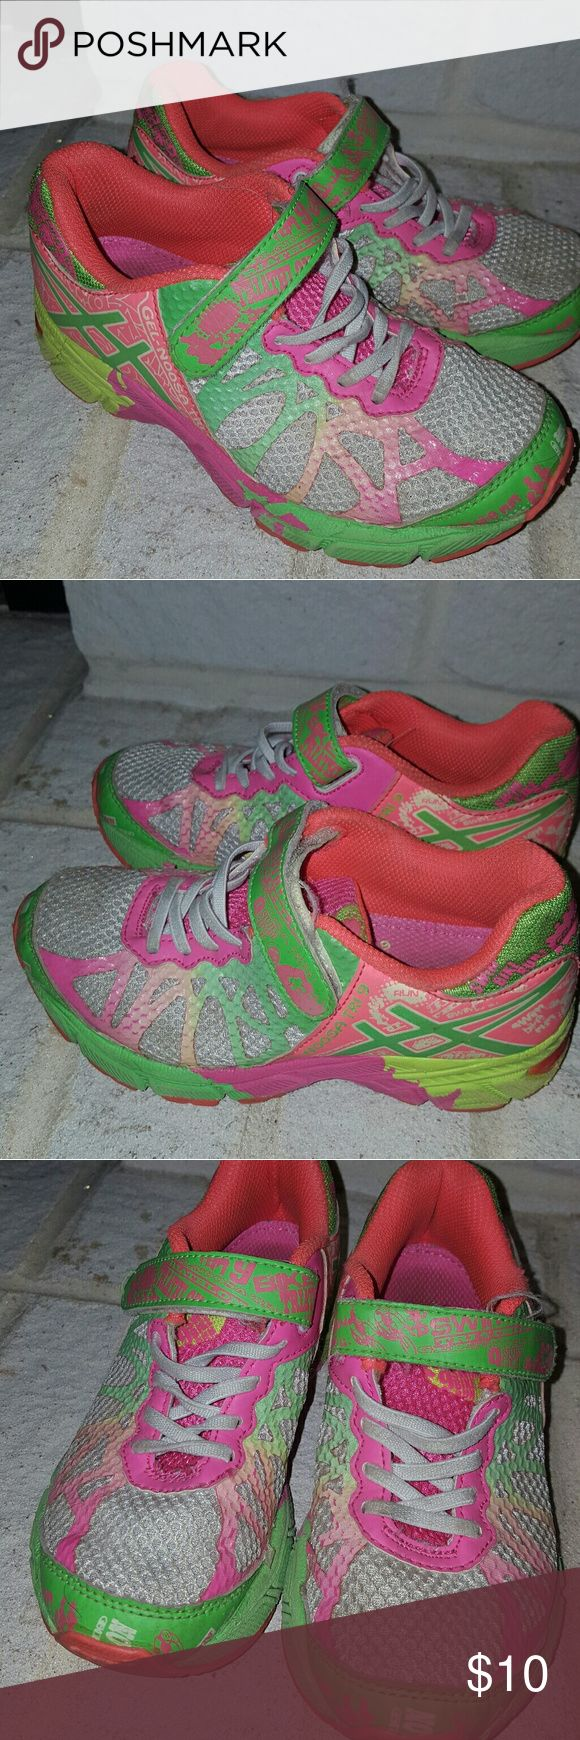 Asics GEL-Noosa Tri 9 Girls Running Shoes Asics GEL-Noosa Tri 9 Girls Running Shoes Color: White/Lime/Hot Pink Asics Shoes Sneakers